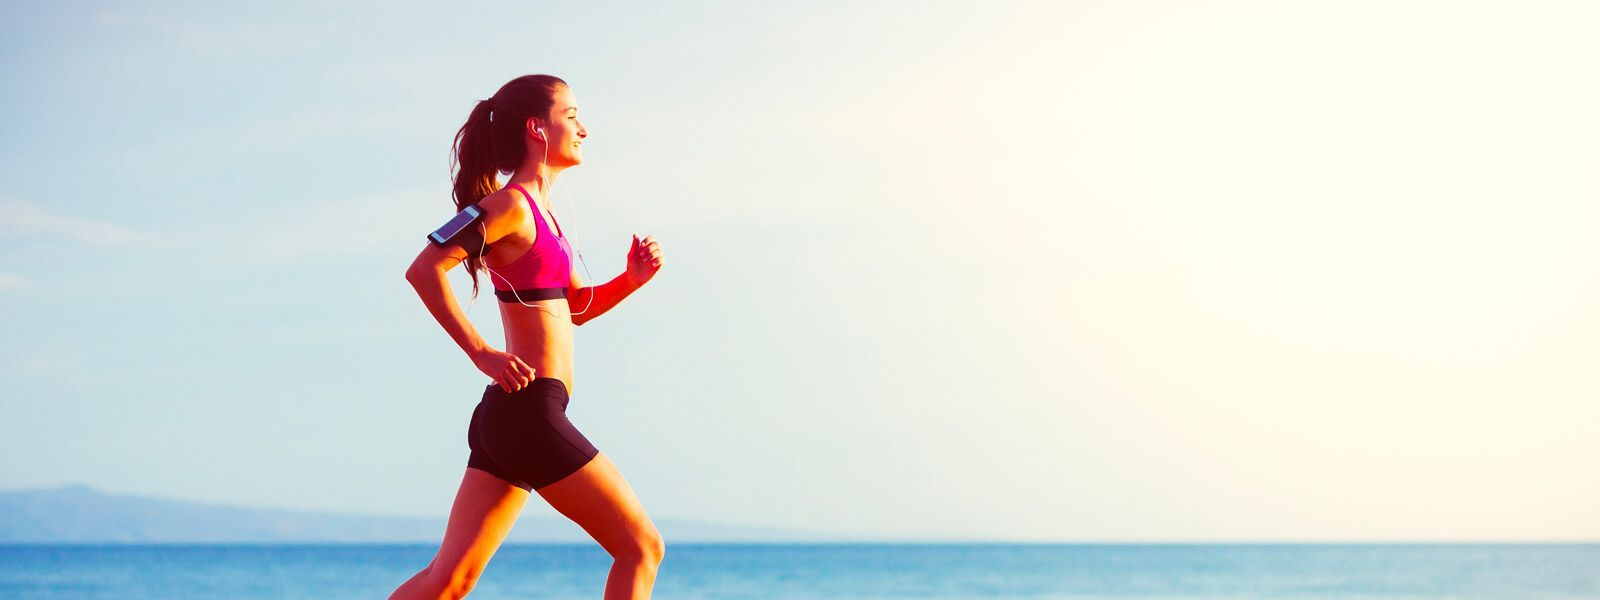 Exercising for 30 minutes will help you achieve the Benefits of a Lifetime full of Health.